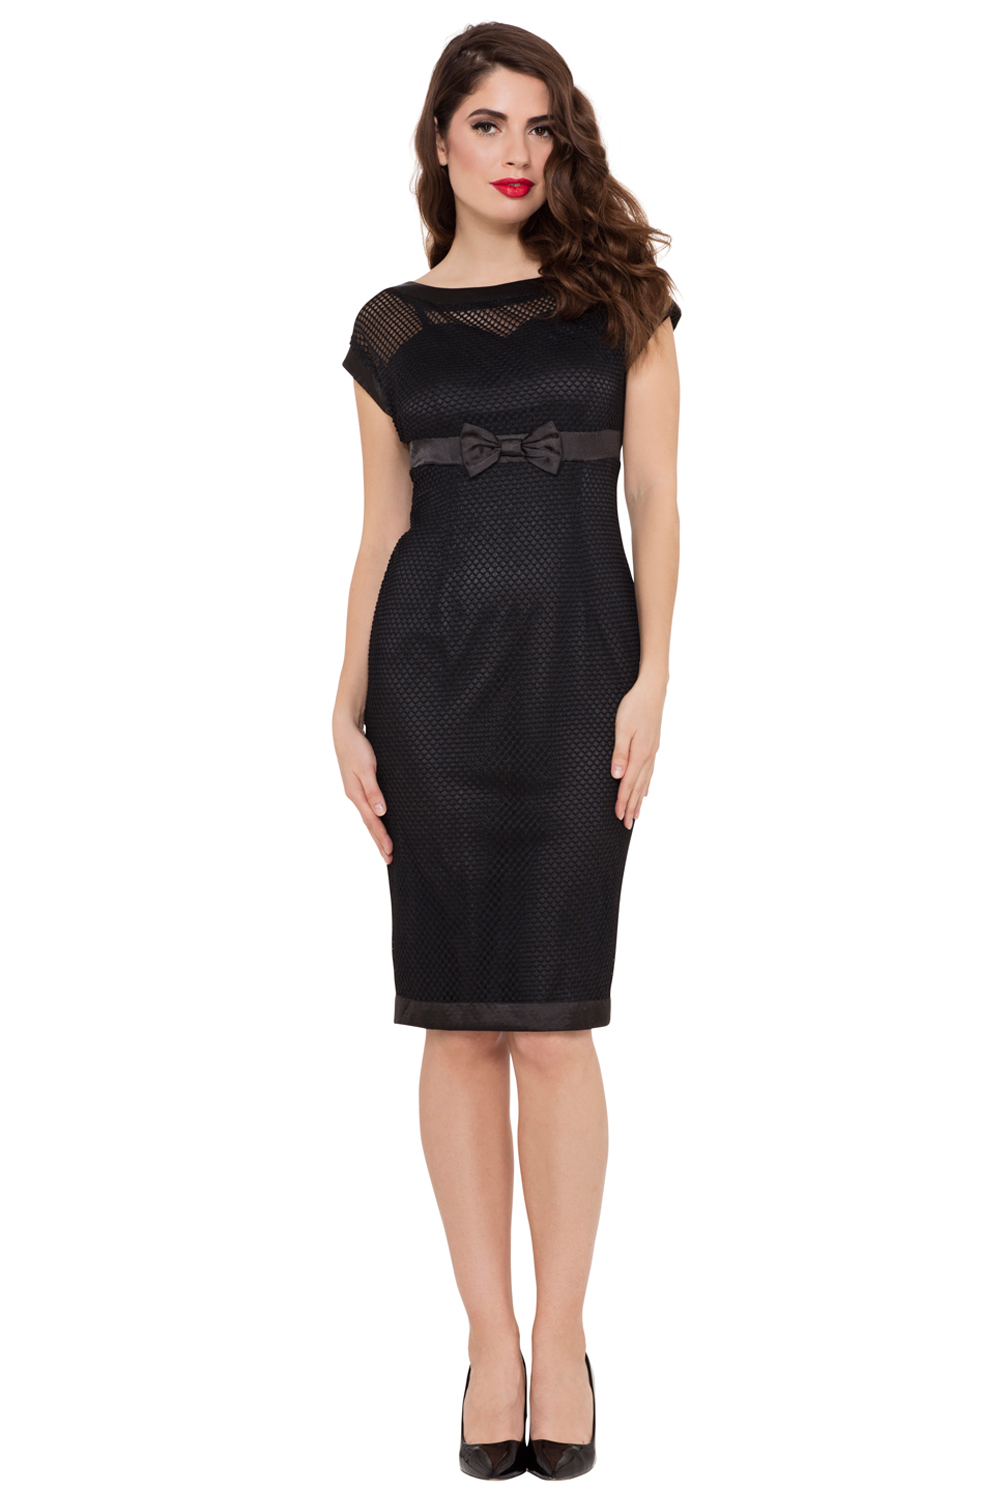 Lysa Black Mesh Wiggle Dress